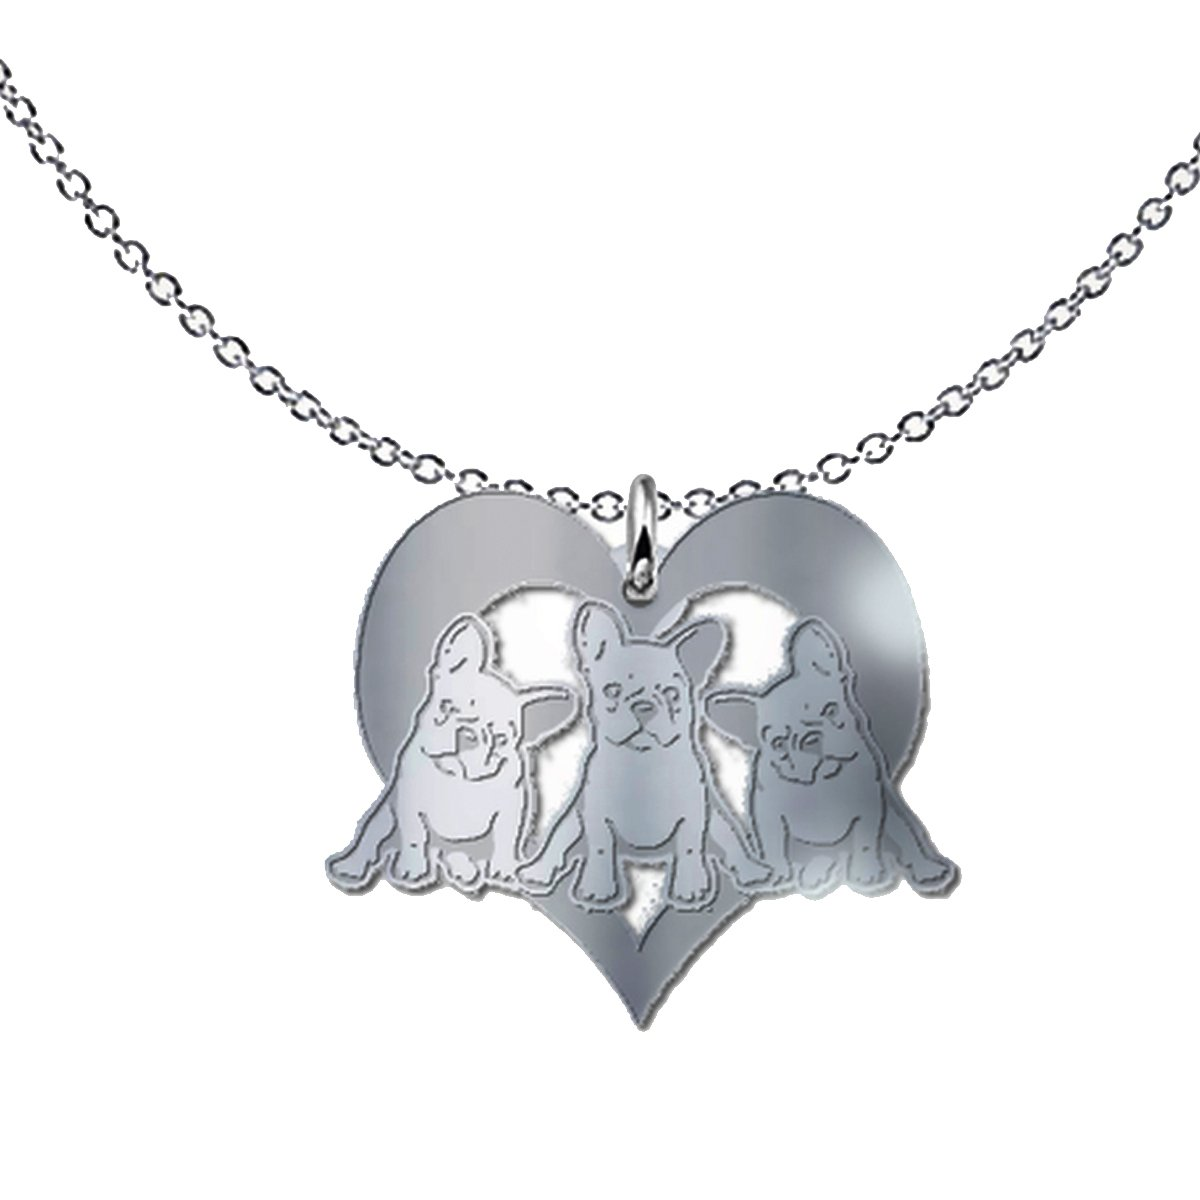 French Bulldog Lovers Freeform Pendant Necklace - Cute Pet Puppies Gift - .925 Solid Sterling Silver